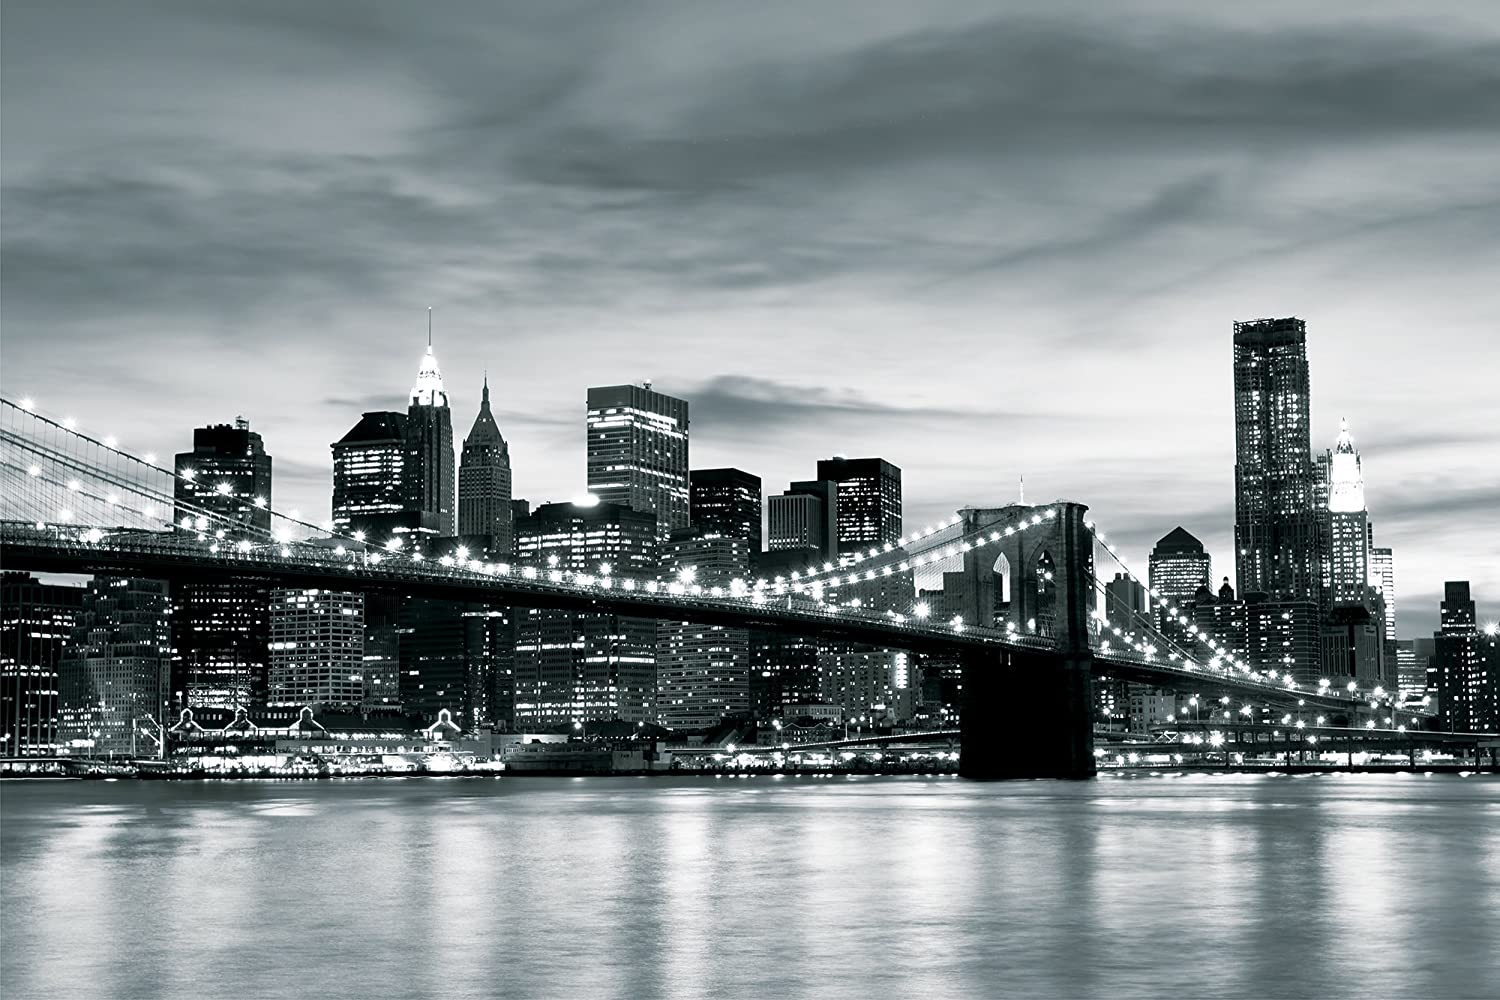 Brooklyn Bridge New York Black White Contrast Wallpaper Mural